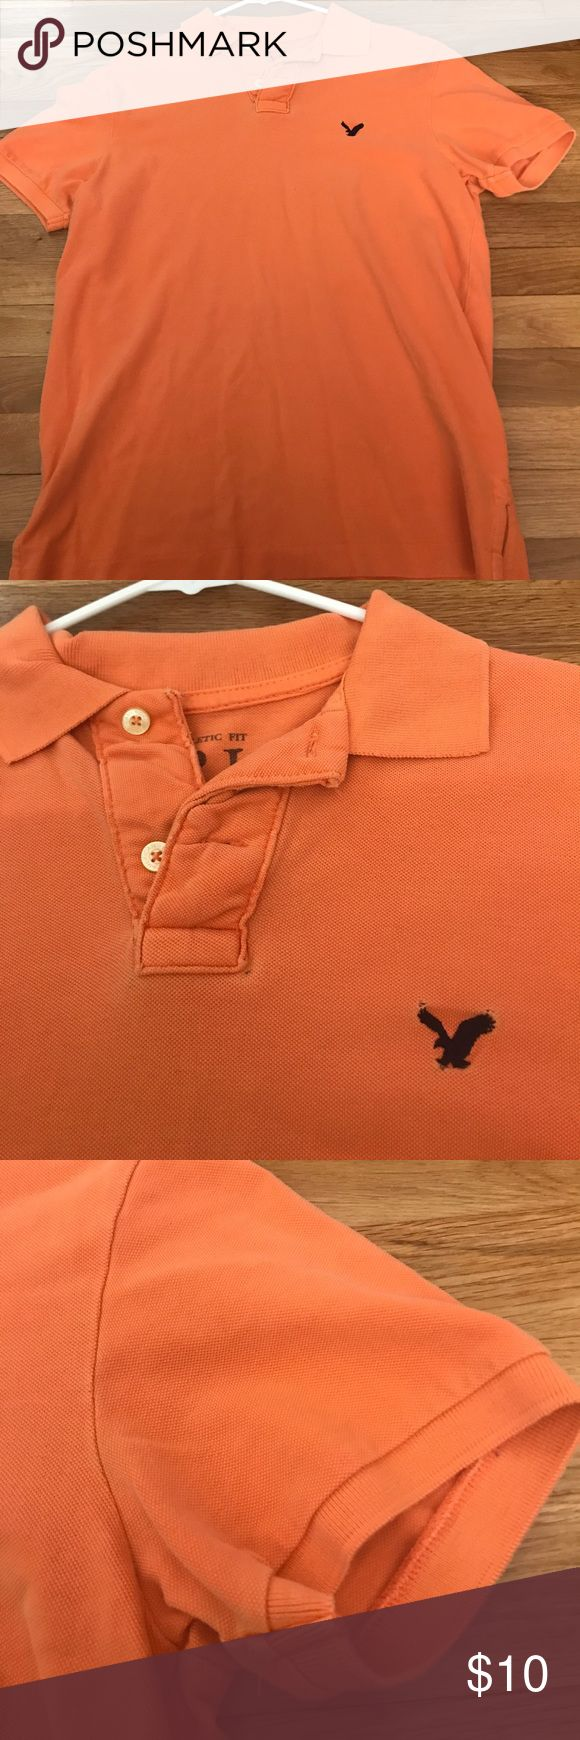 👑 AE Athletic Fit Polo ⭐️ SALE No flaws noted. Smoke free. 100% Cotton. Coloring is basic orange with navy blue logo.   ⭐️ SALE! PICK 3 POLOS FOR $22! American Eagle Outfitters Shirts Polos